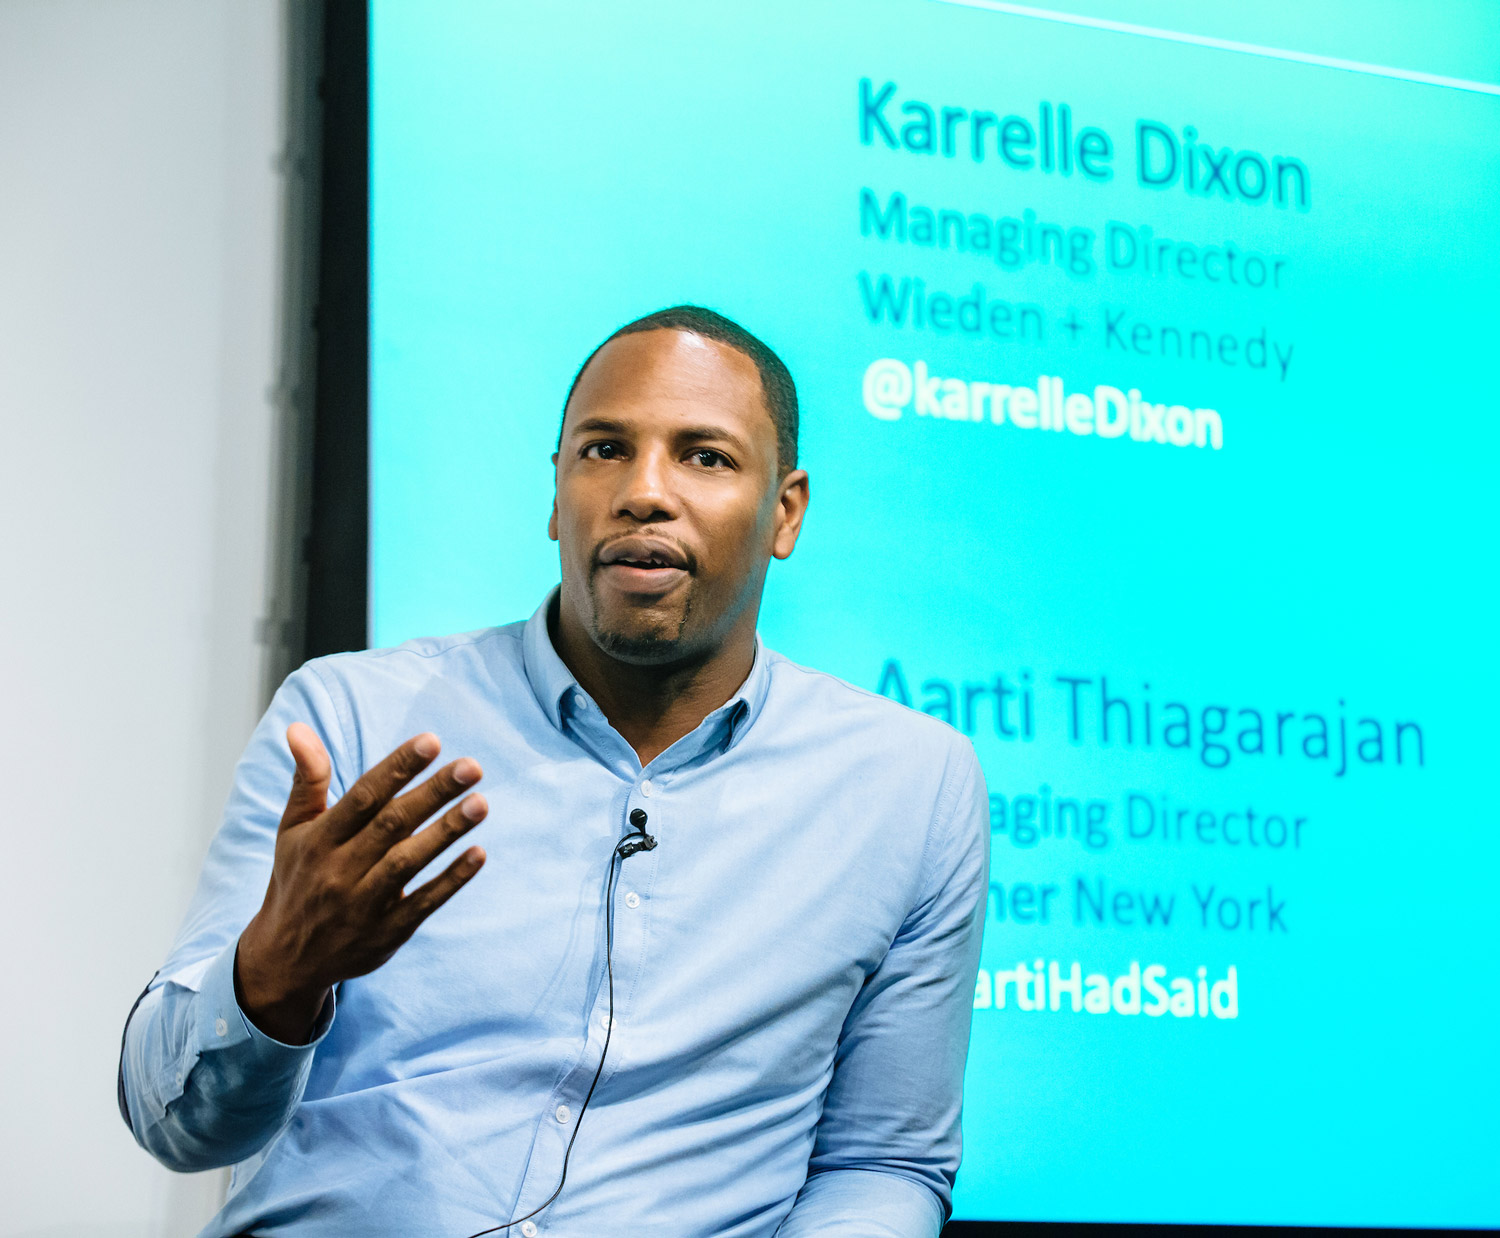 """Karrelle Dixon, Managing Director, Wieden + Kennedy: """"I take stock every year: Is this a place I still want to be?"""" -"""